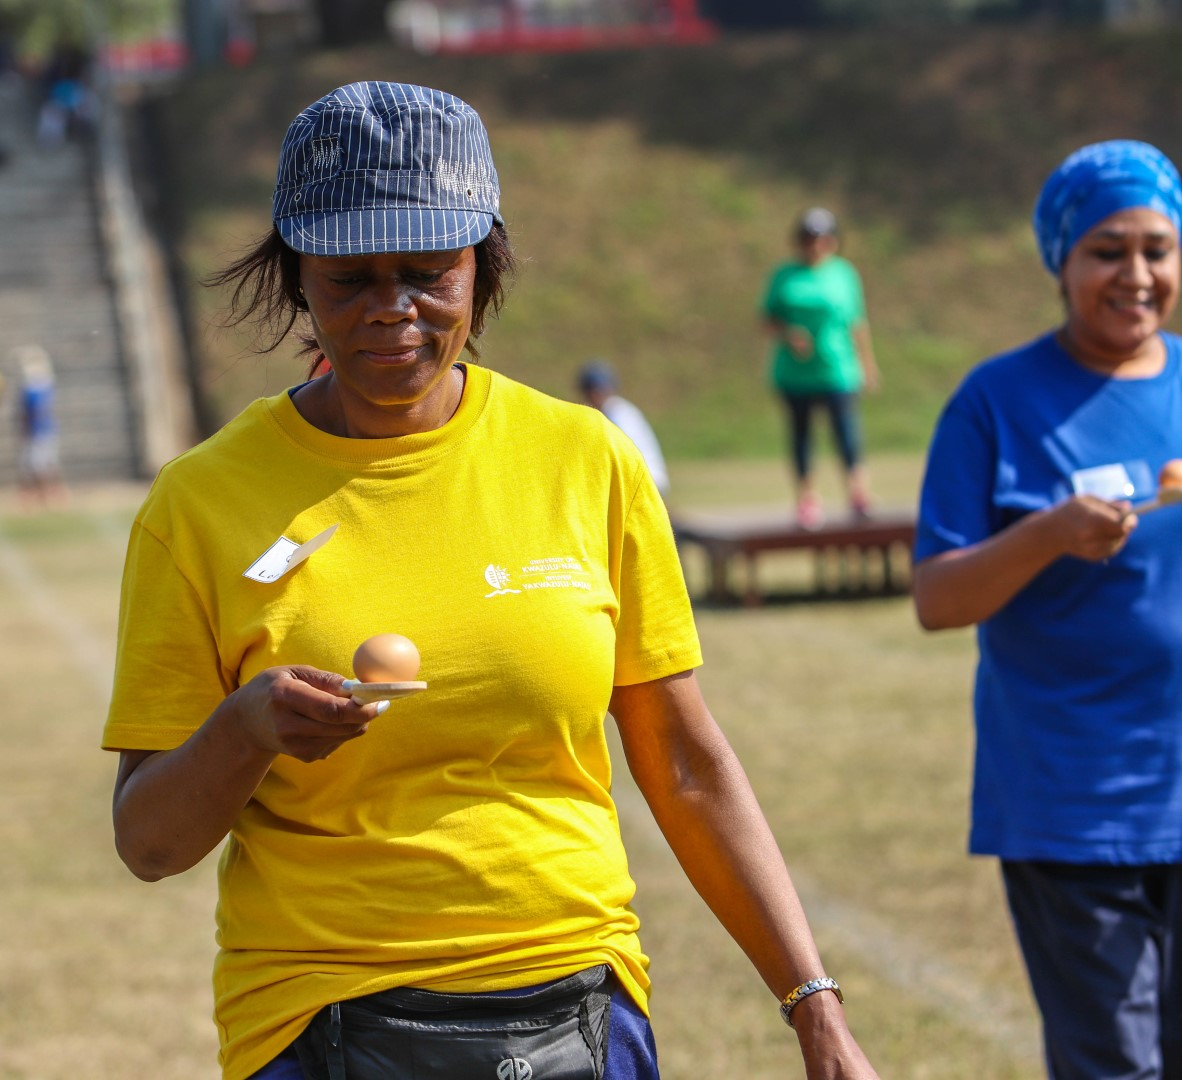 Dr Lolie Makhubu Badenhorst competes in Egg and Spoon Race